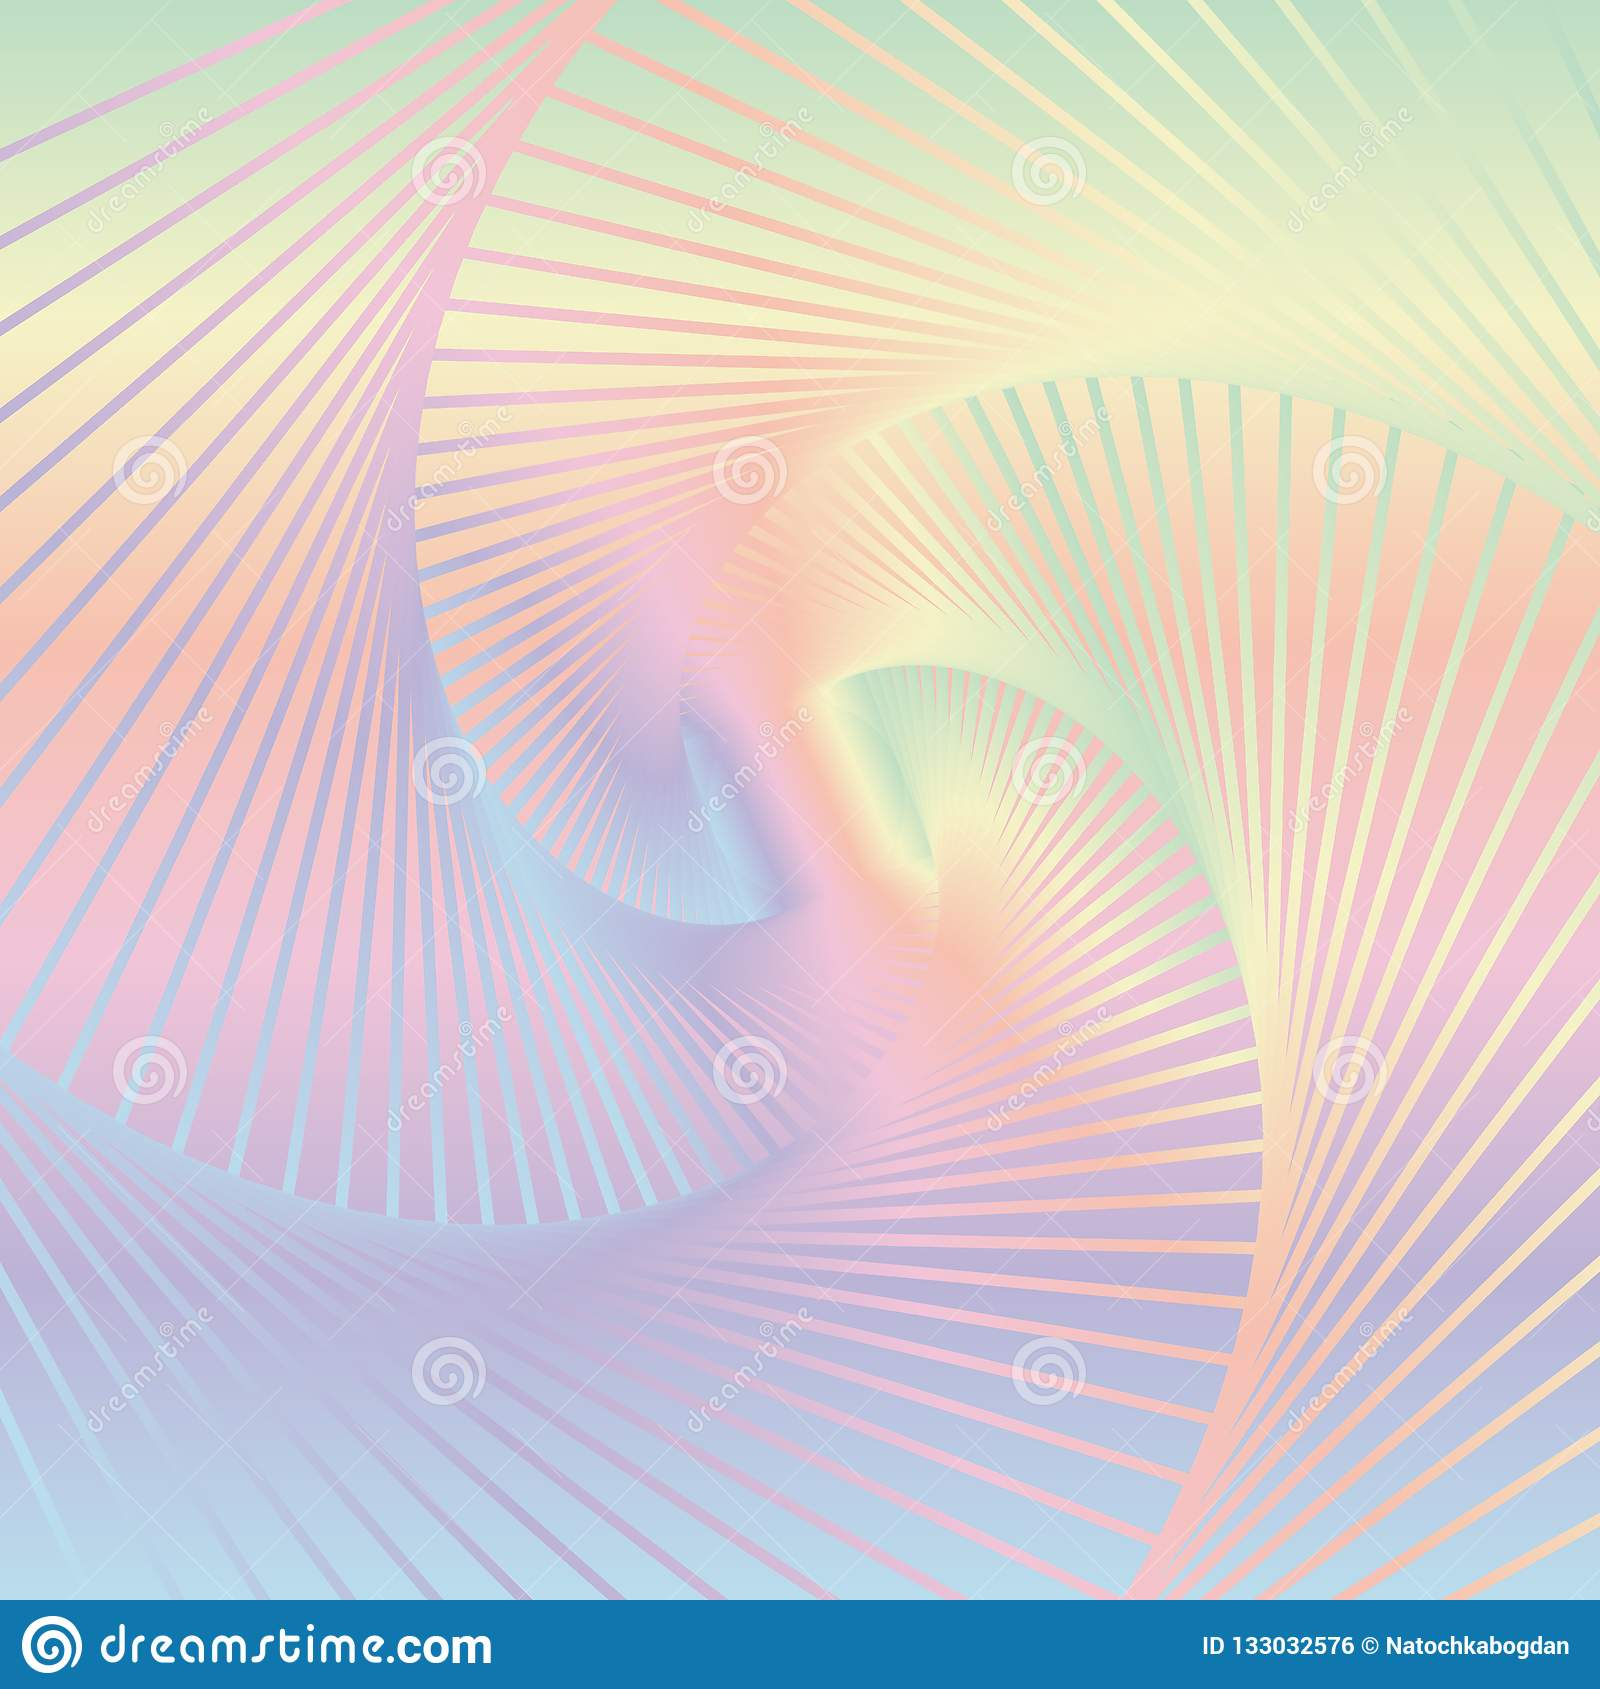 Abstract colorful spiral background. Image of twisting lines on